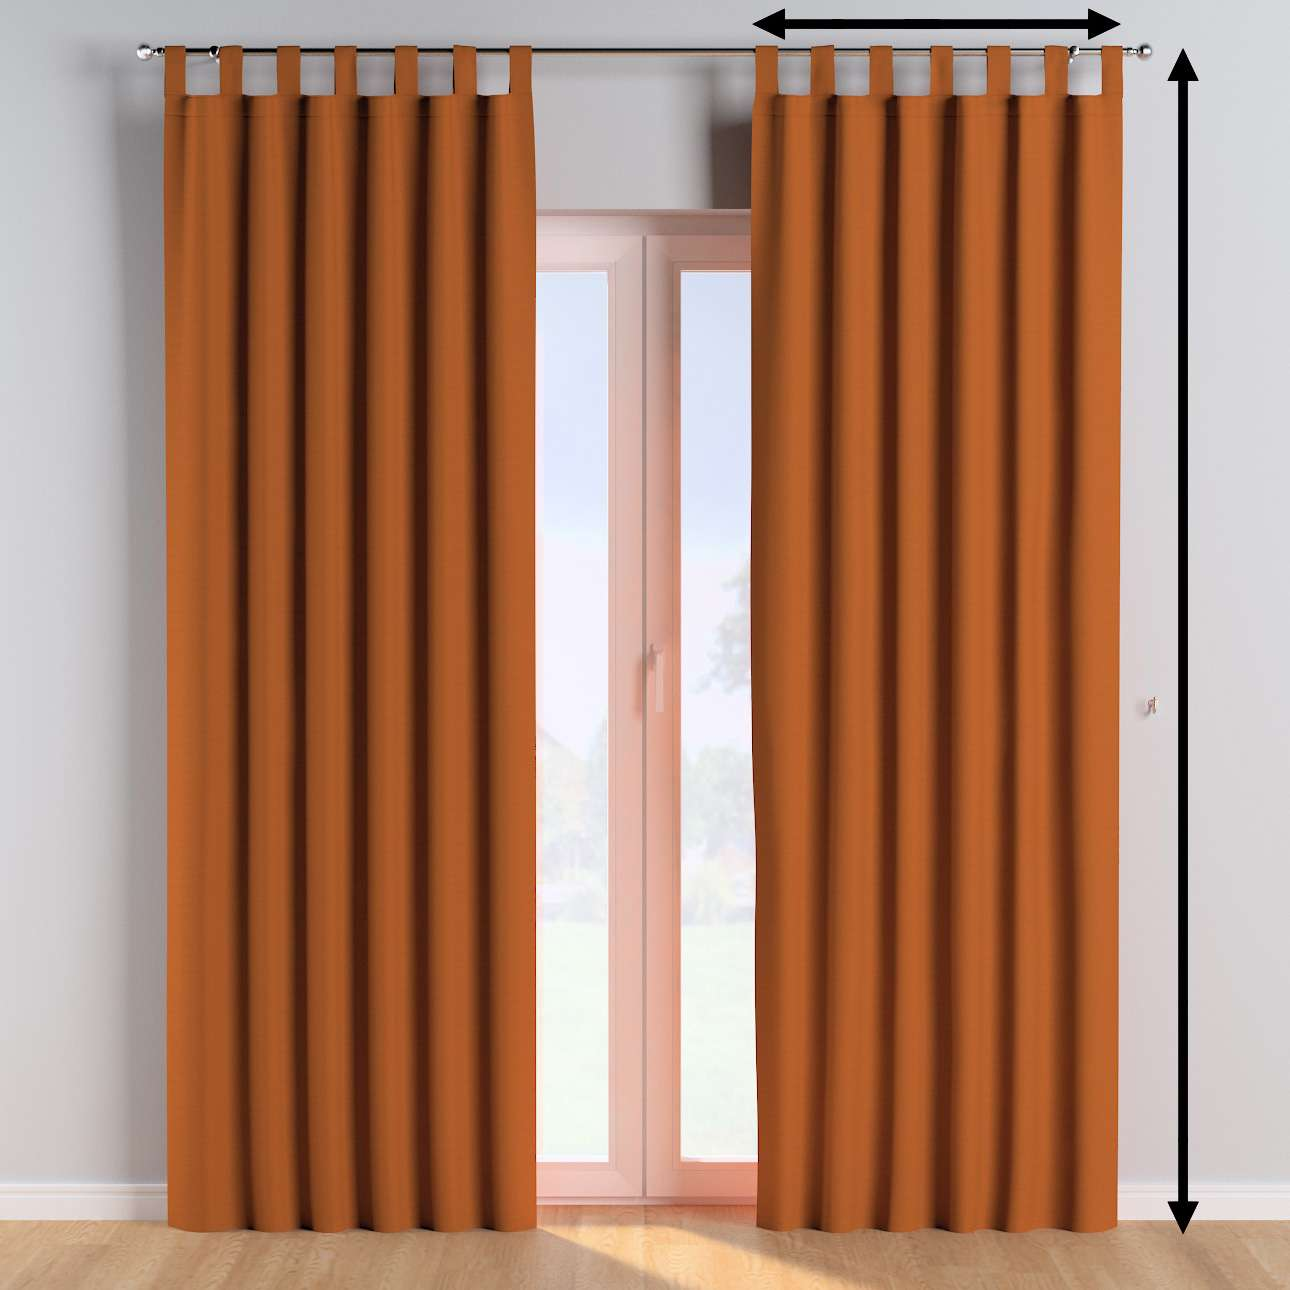 Tab top curtains in collection Cotton Story, fabric: 702-42